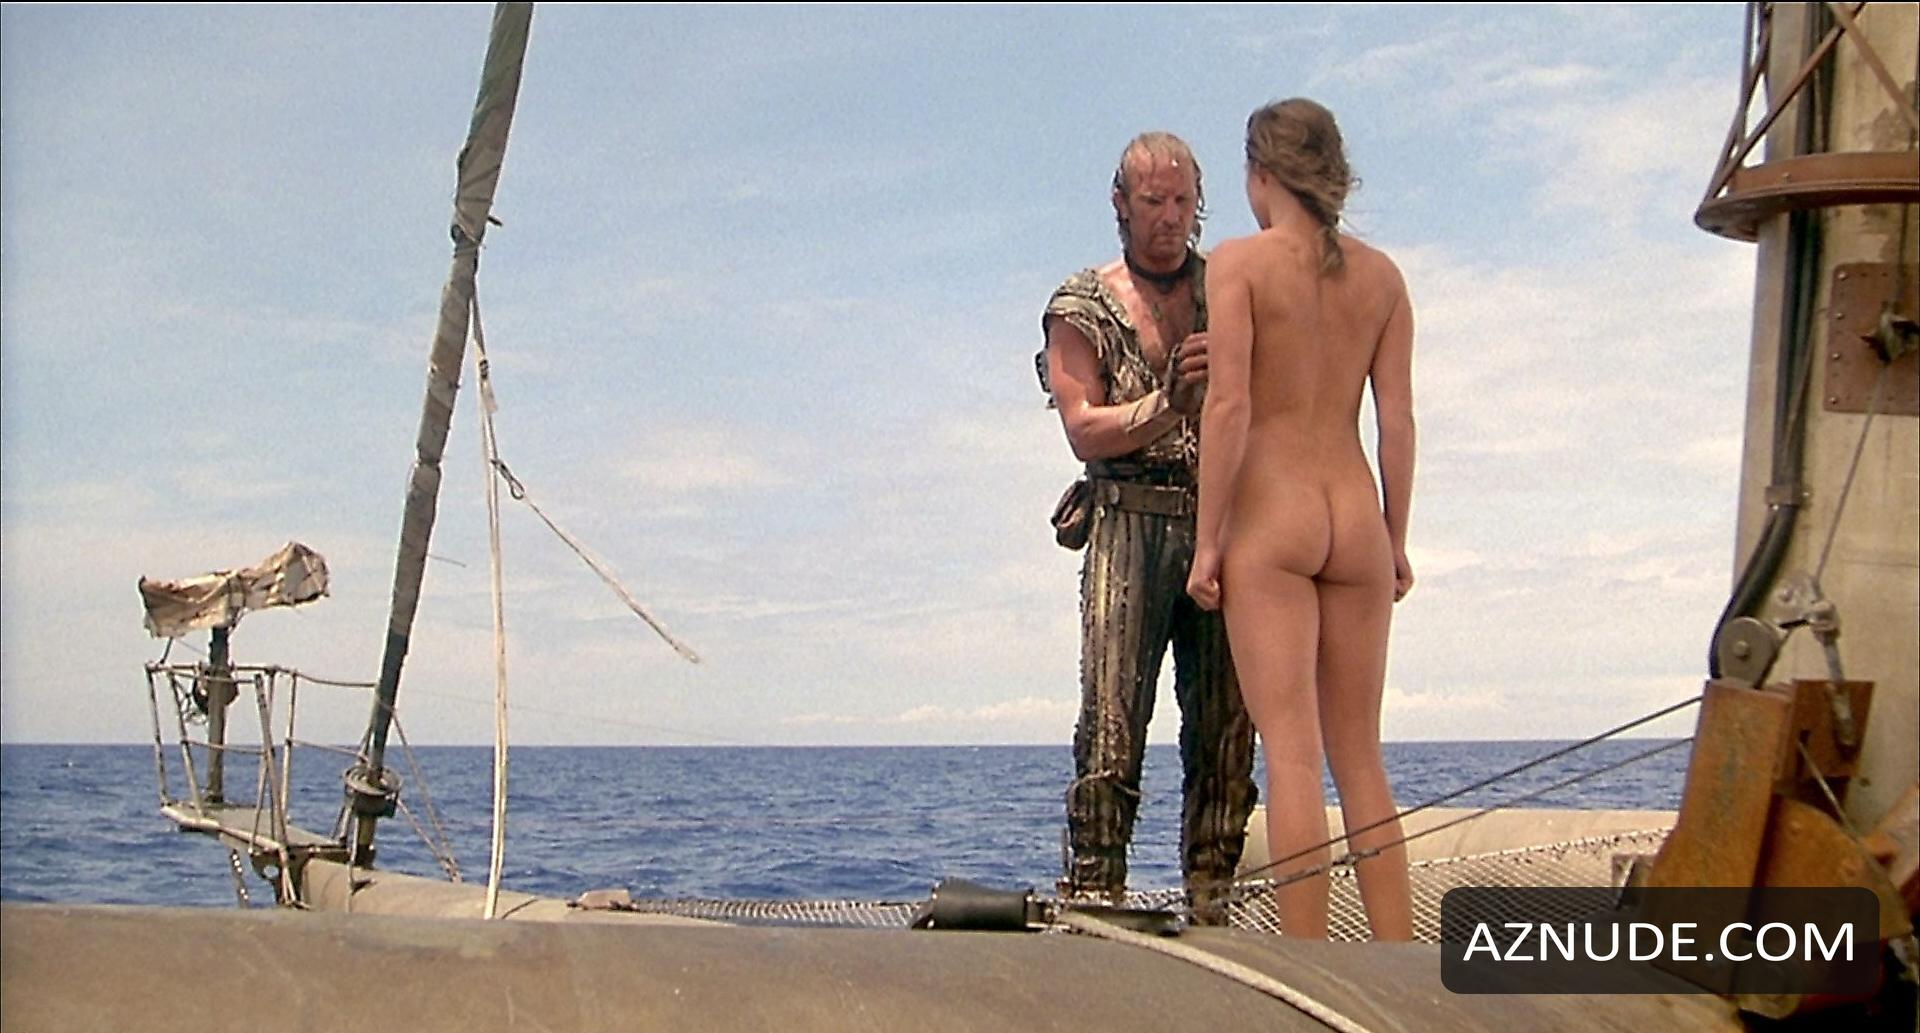 For waterworld movie nude scene more than